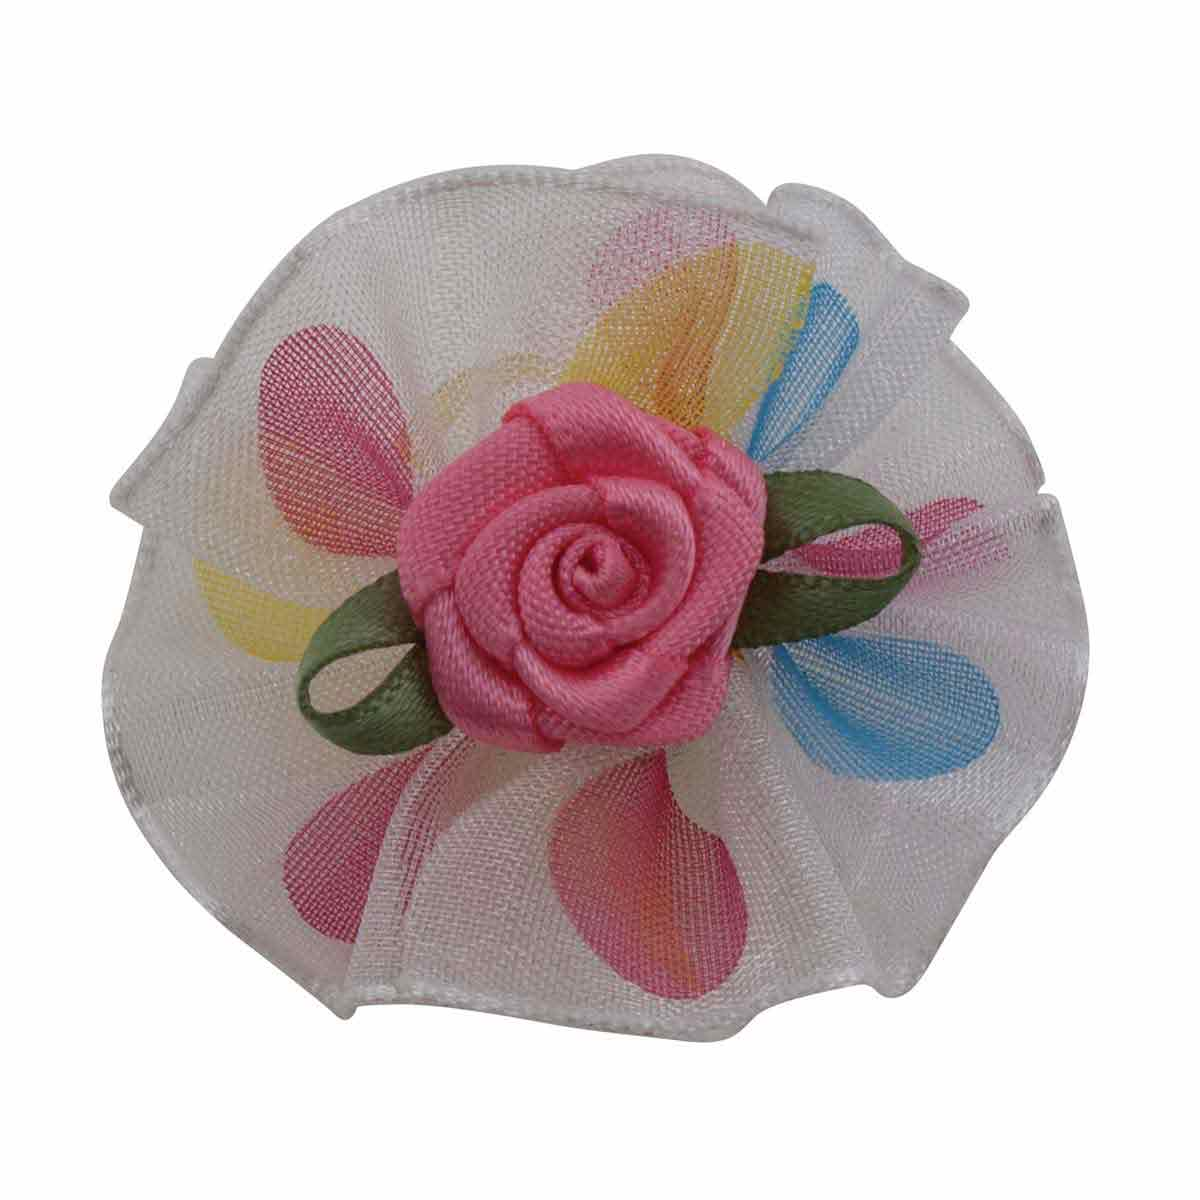 Bag of 100 Fancy Finishes Assorted Dot Print Organza Bows with Rose Center